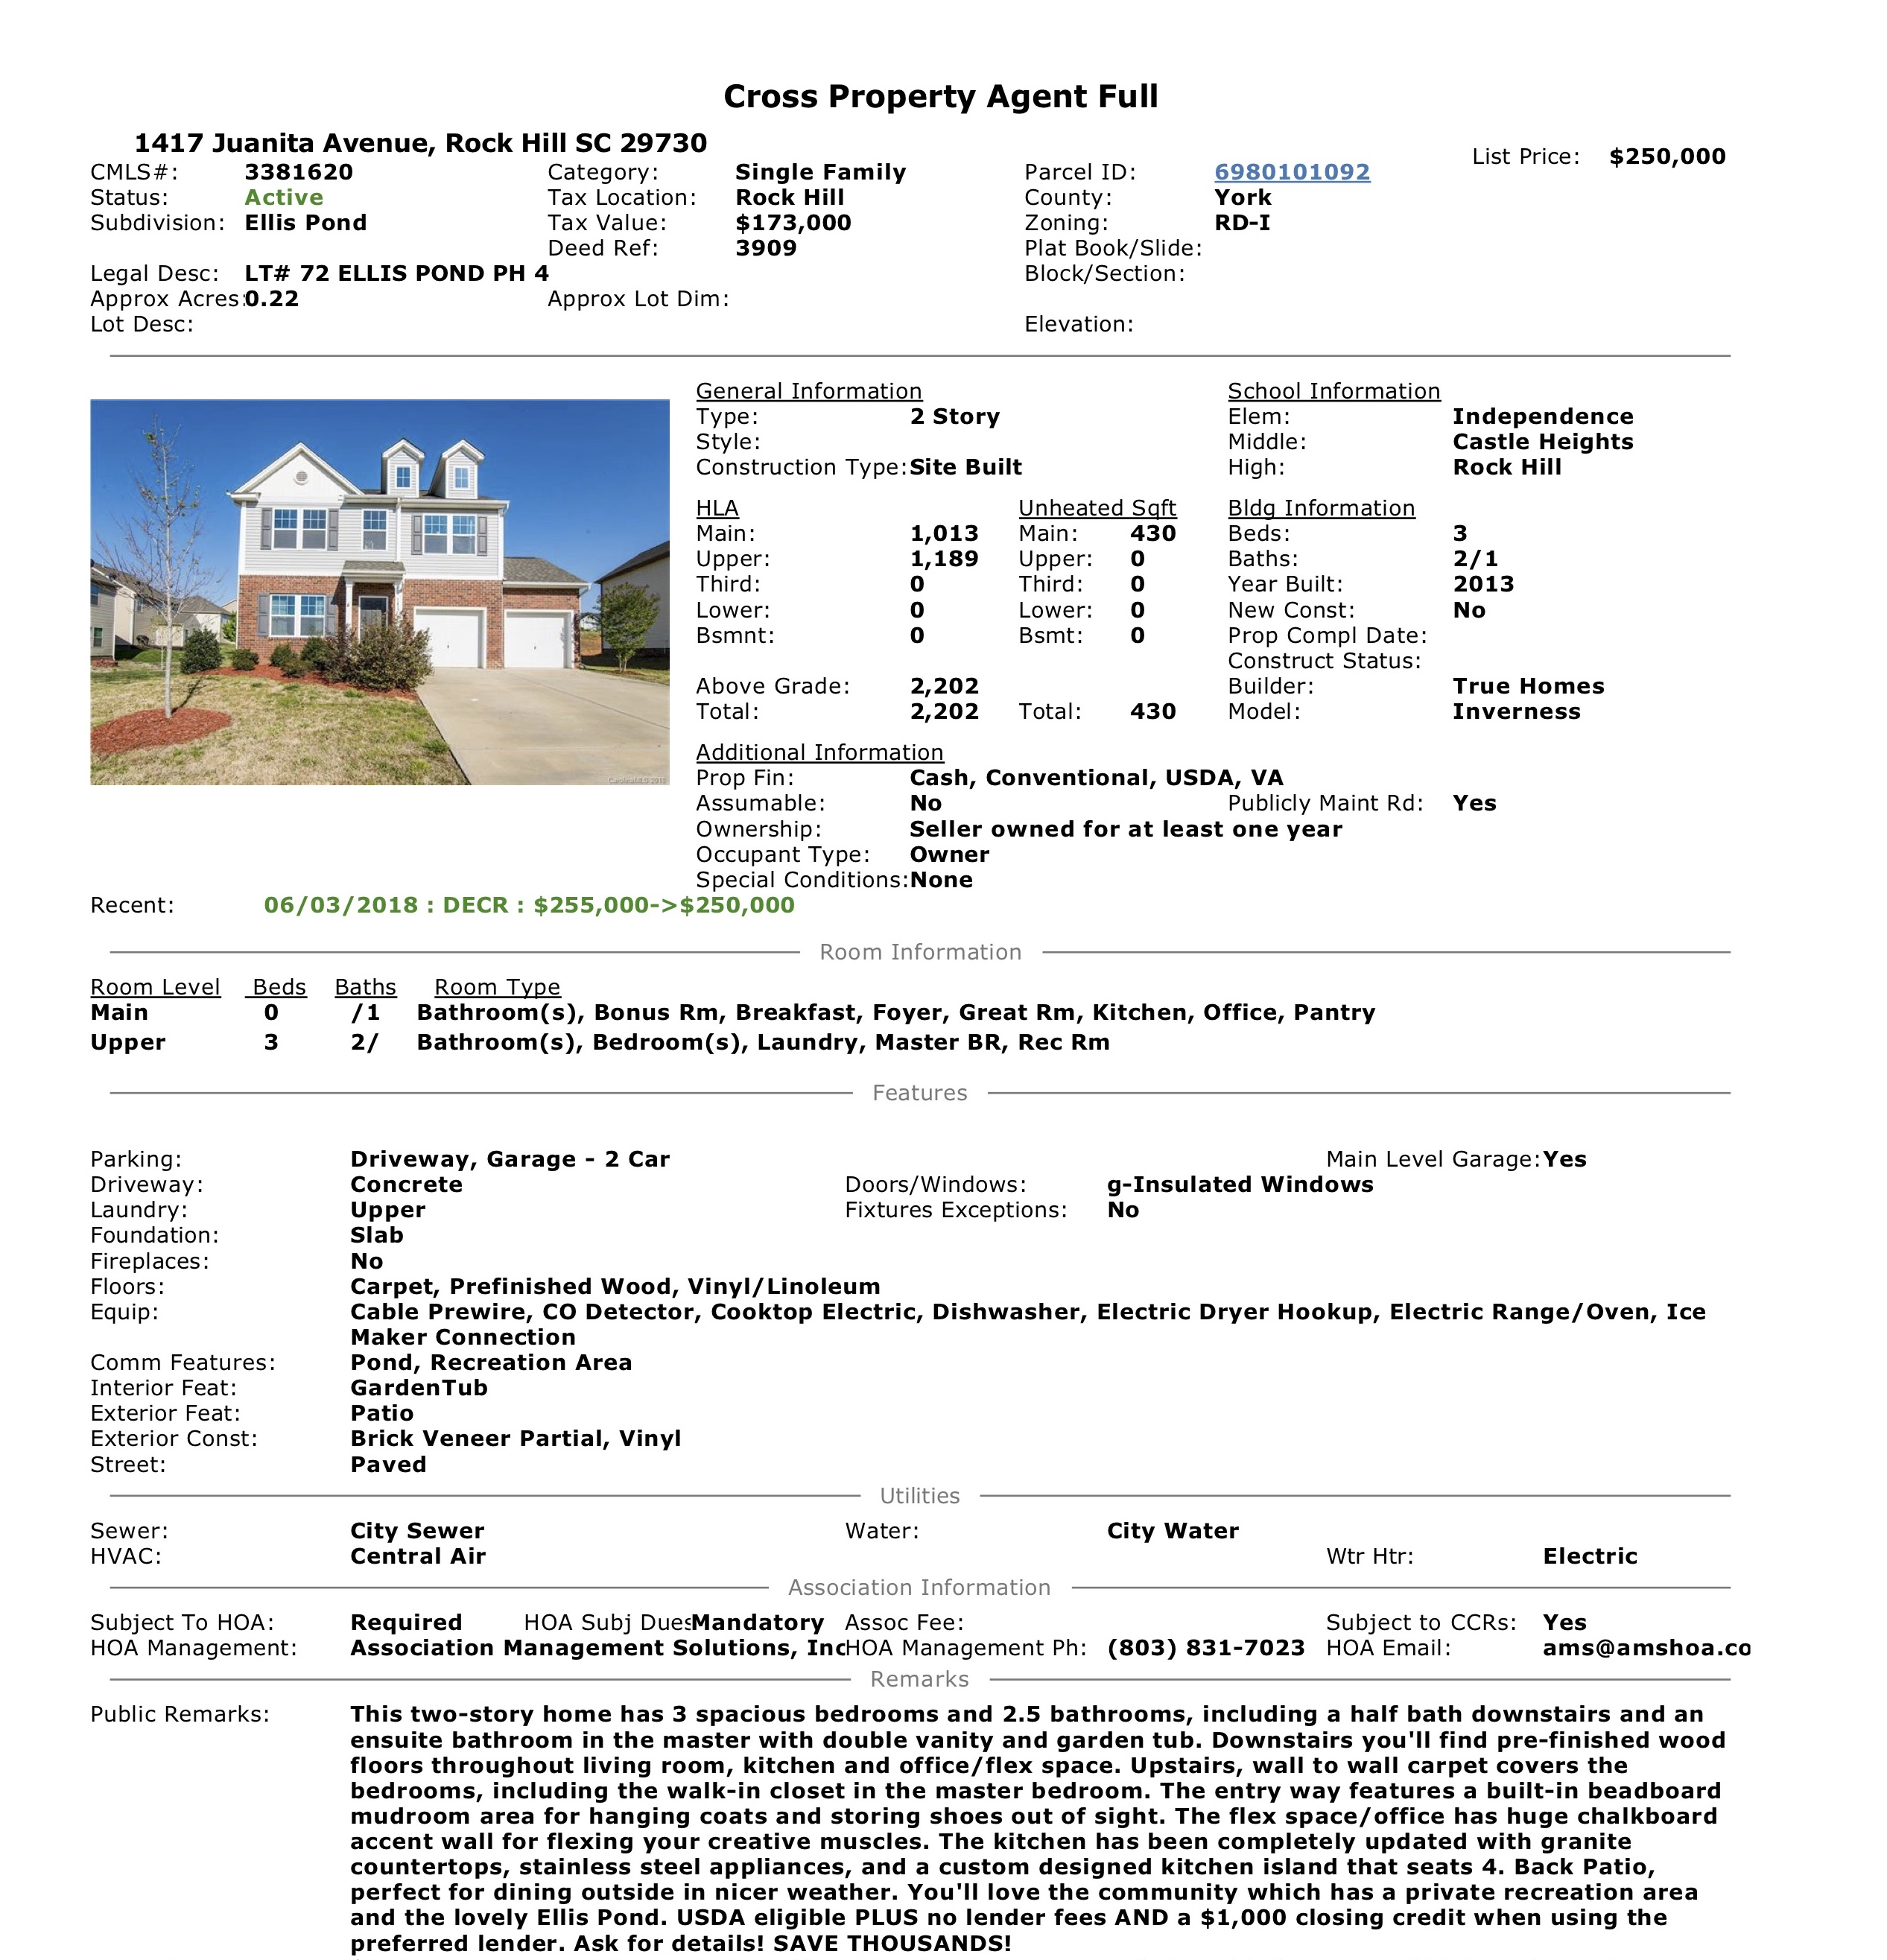 MLS Data Sheet 1417 Juanita Avenue